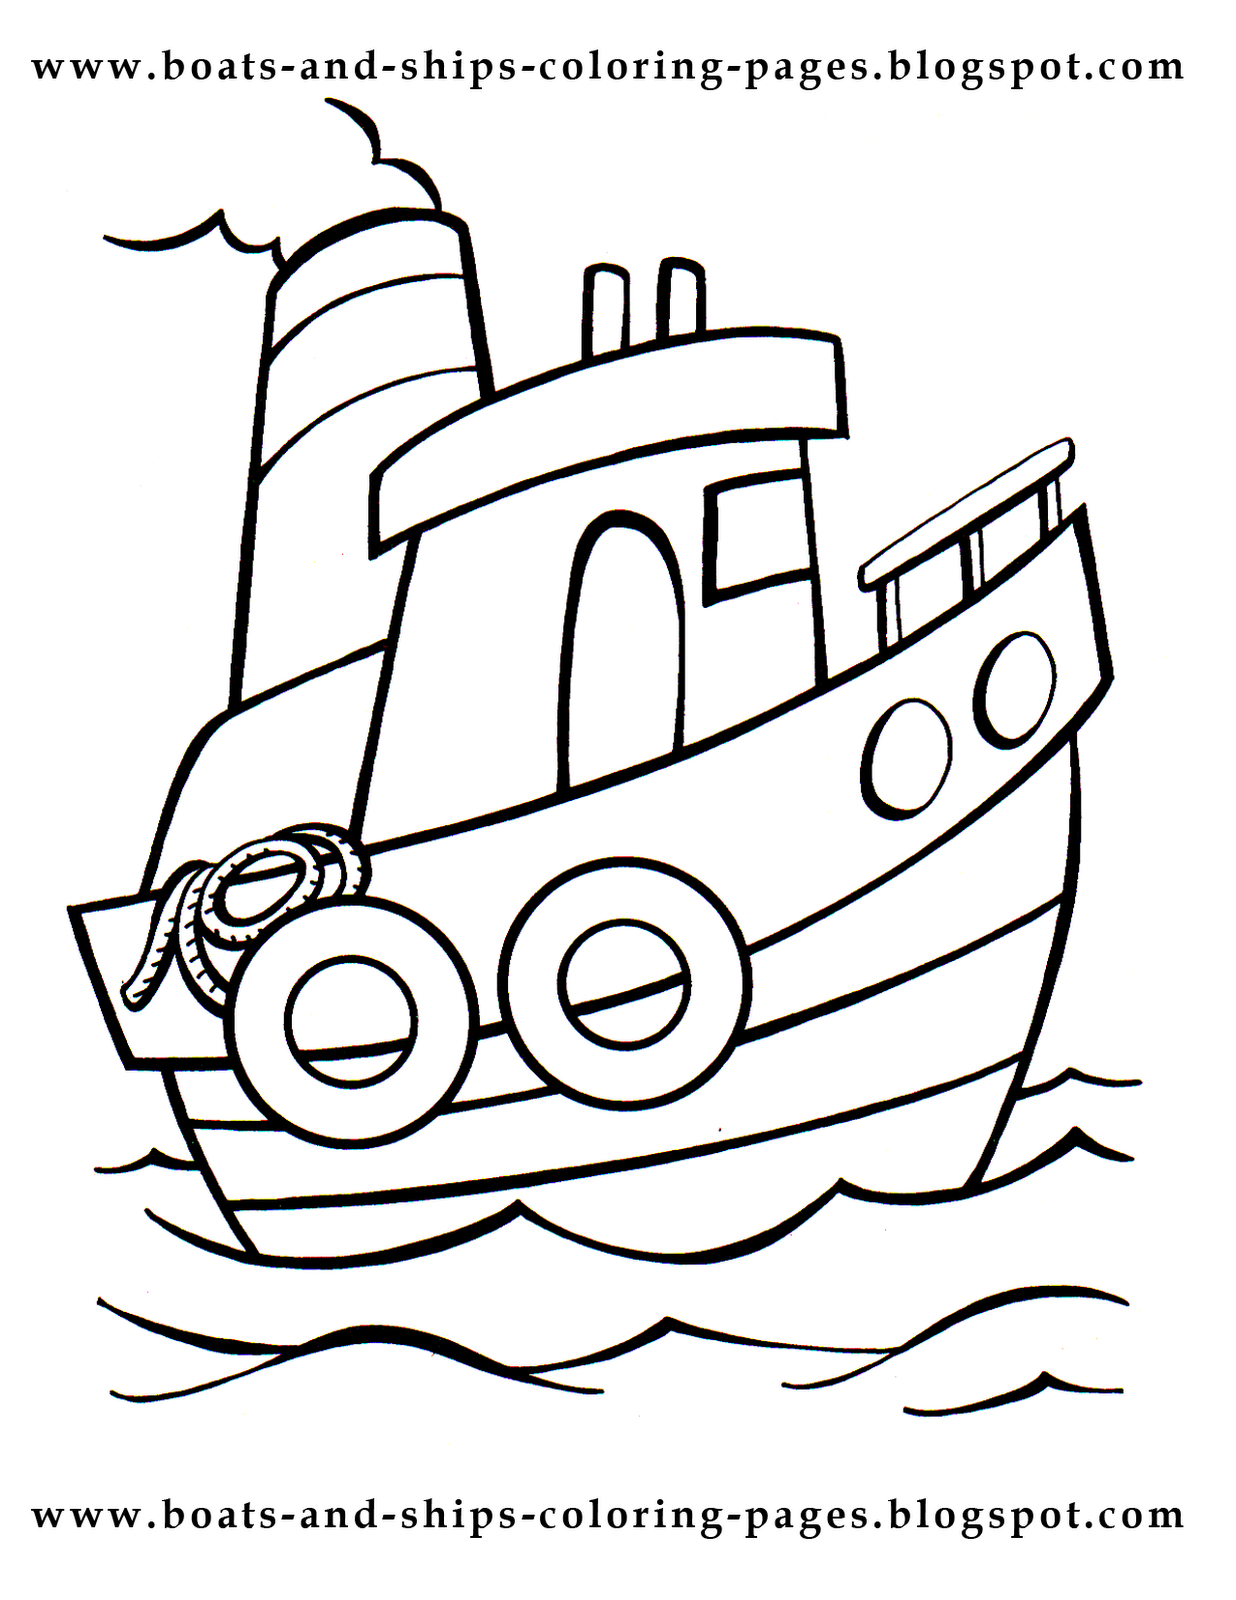 Ships And Boats Coloring Pages